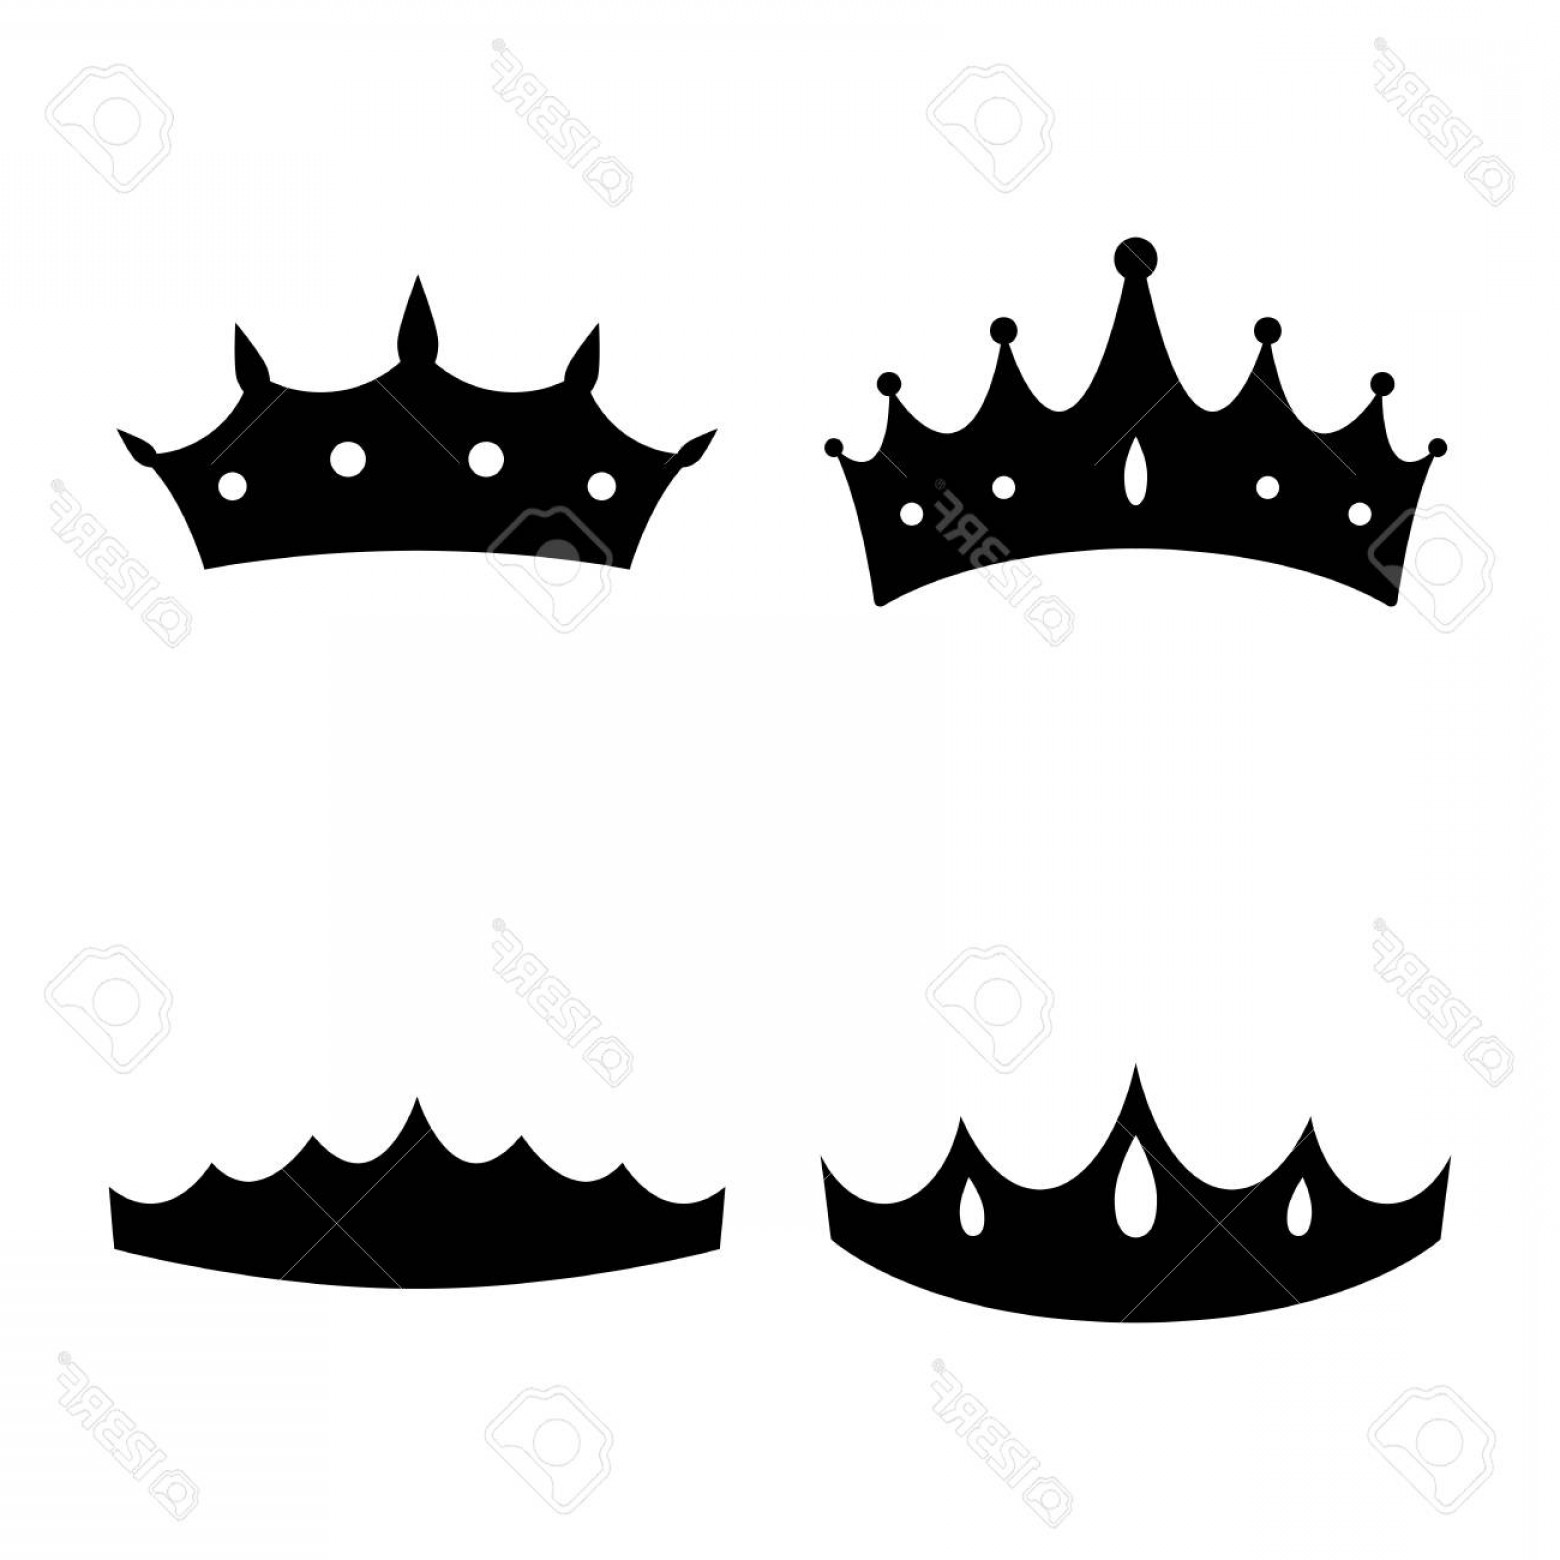 Princess Crown Vector Graphic: Photostock Vector Queen Crown Diadem Princess Crown Icons Vector Illustration Silhouettes Flat Style